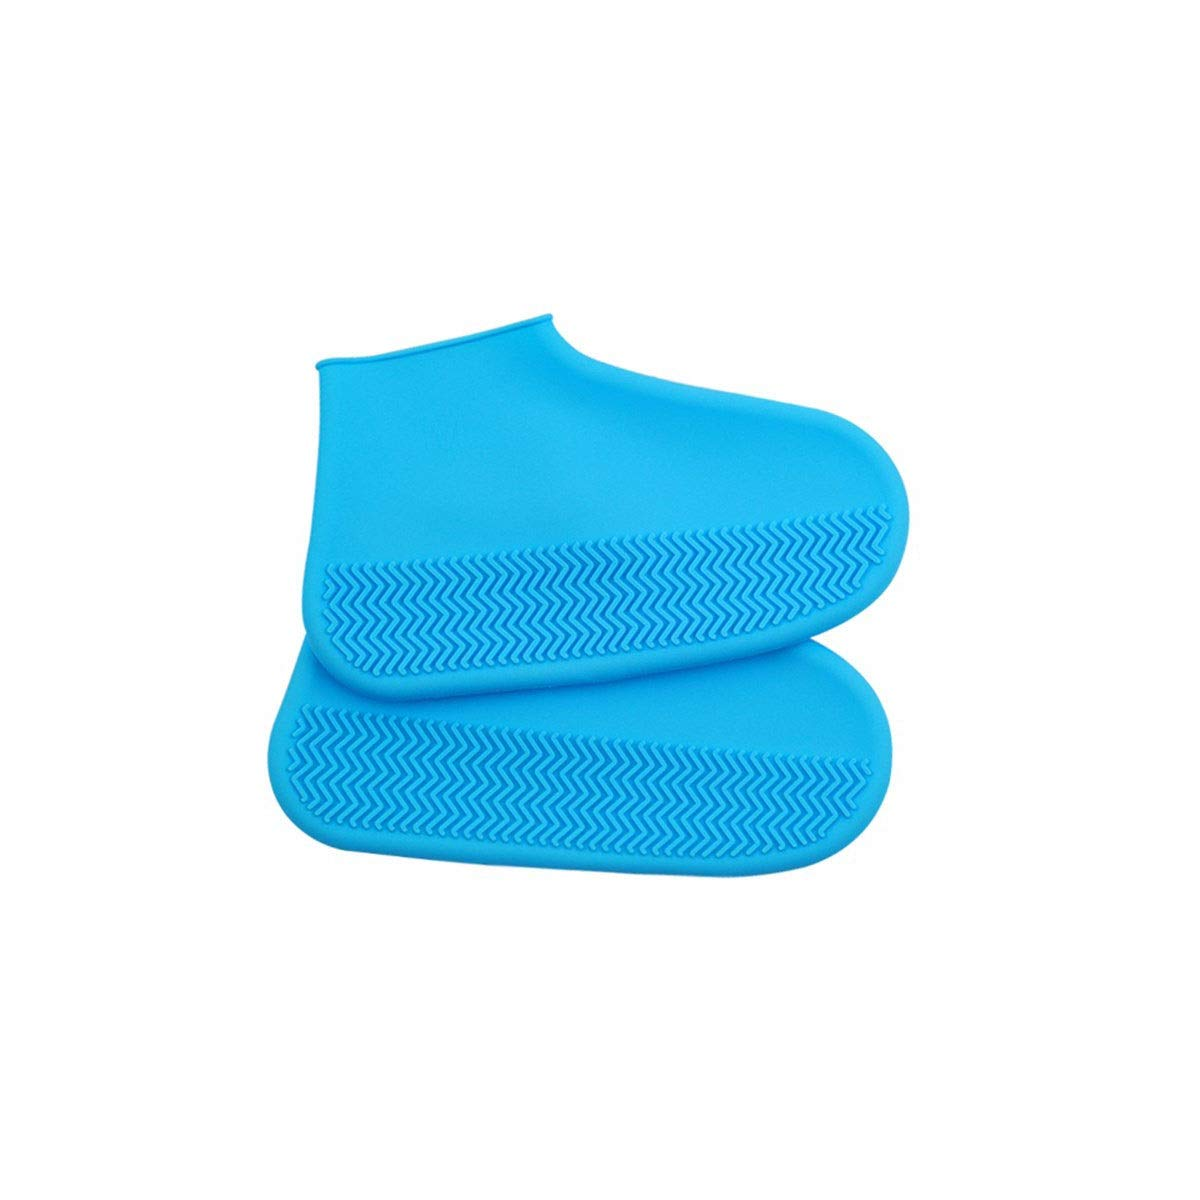 KAIYITONG Silicone Shoe Cover, Waterproof Rainy Day Thick Non-Slip wear-Resistant rain Boots, Men and Women Outdoor Rubber Latex into Multi-Purpose Shoe Covers (Color : Blue, Size : L) by KAIYITONG